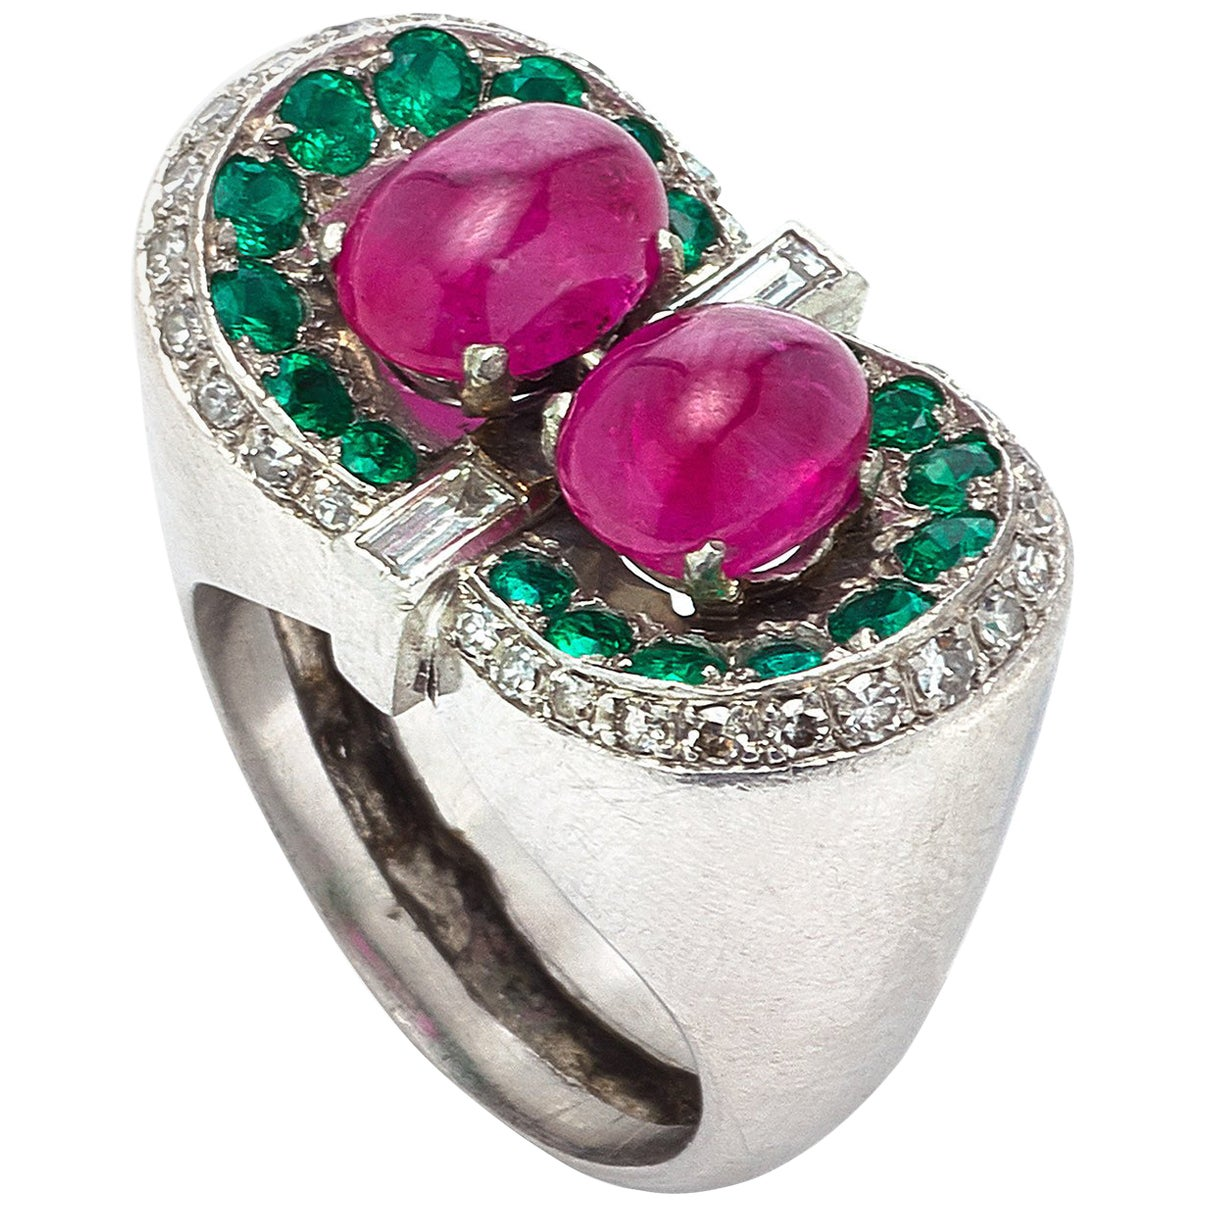 Cabochon Ruby Emerald Emeralds Diamond Ring